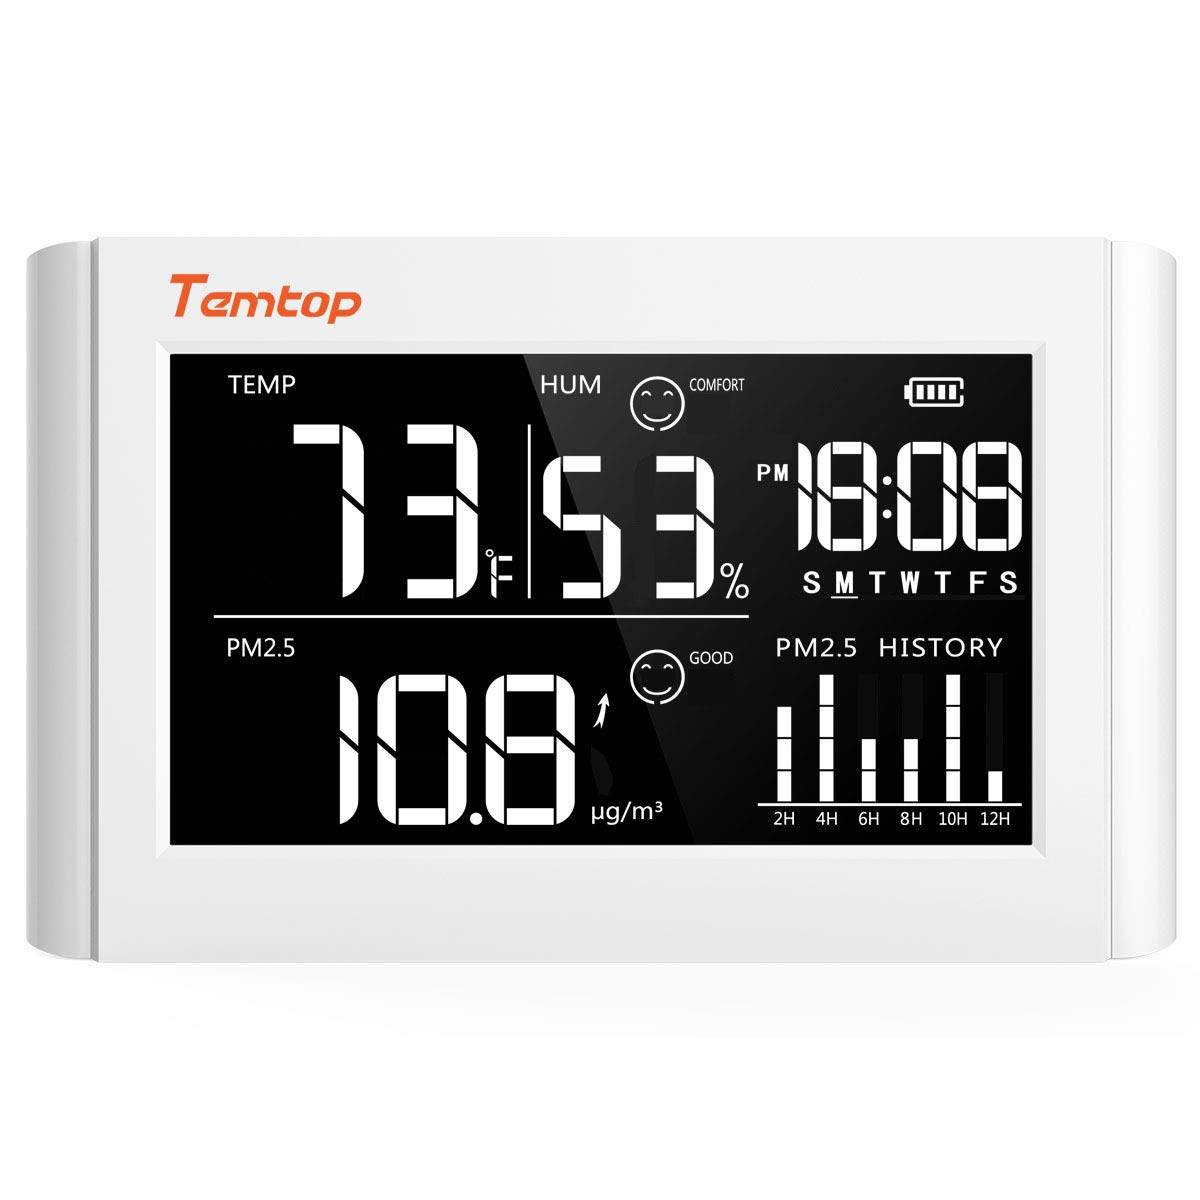 Temtop P20 Digital Thermometer and Hygrometer PM2.5 Air Quality Monitor Tabletop Temperature Monitor Humidity Gauge Meter with Comfort Level Icon and Rechargeable Battery -White by Temtop